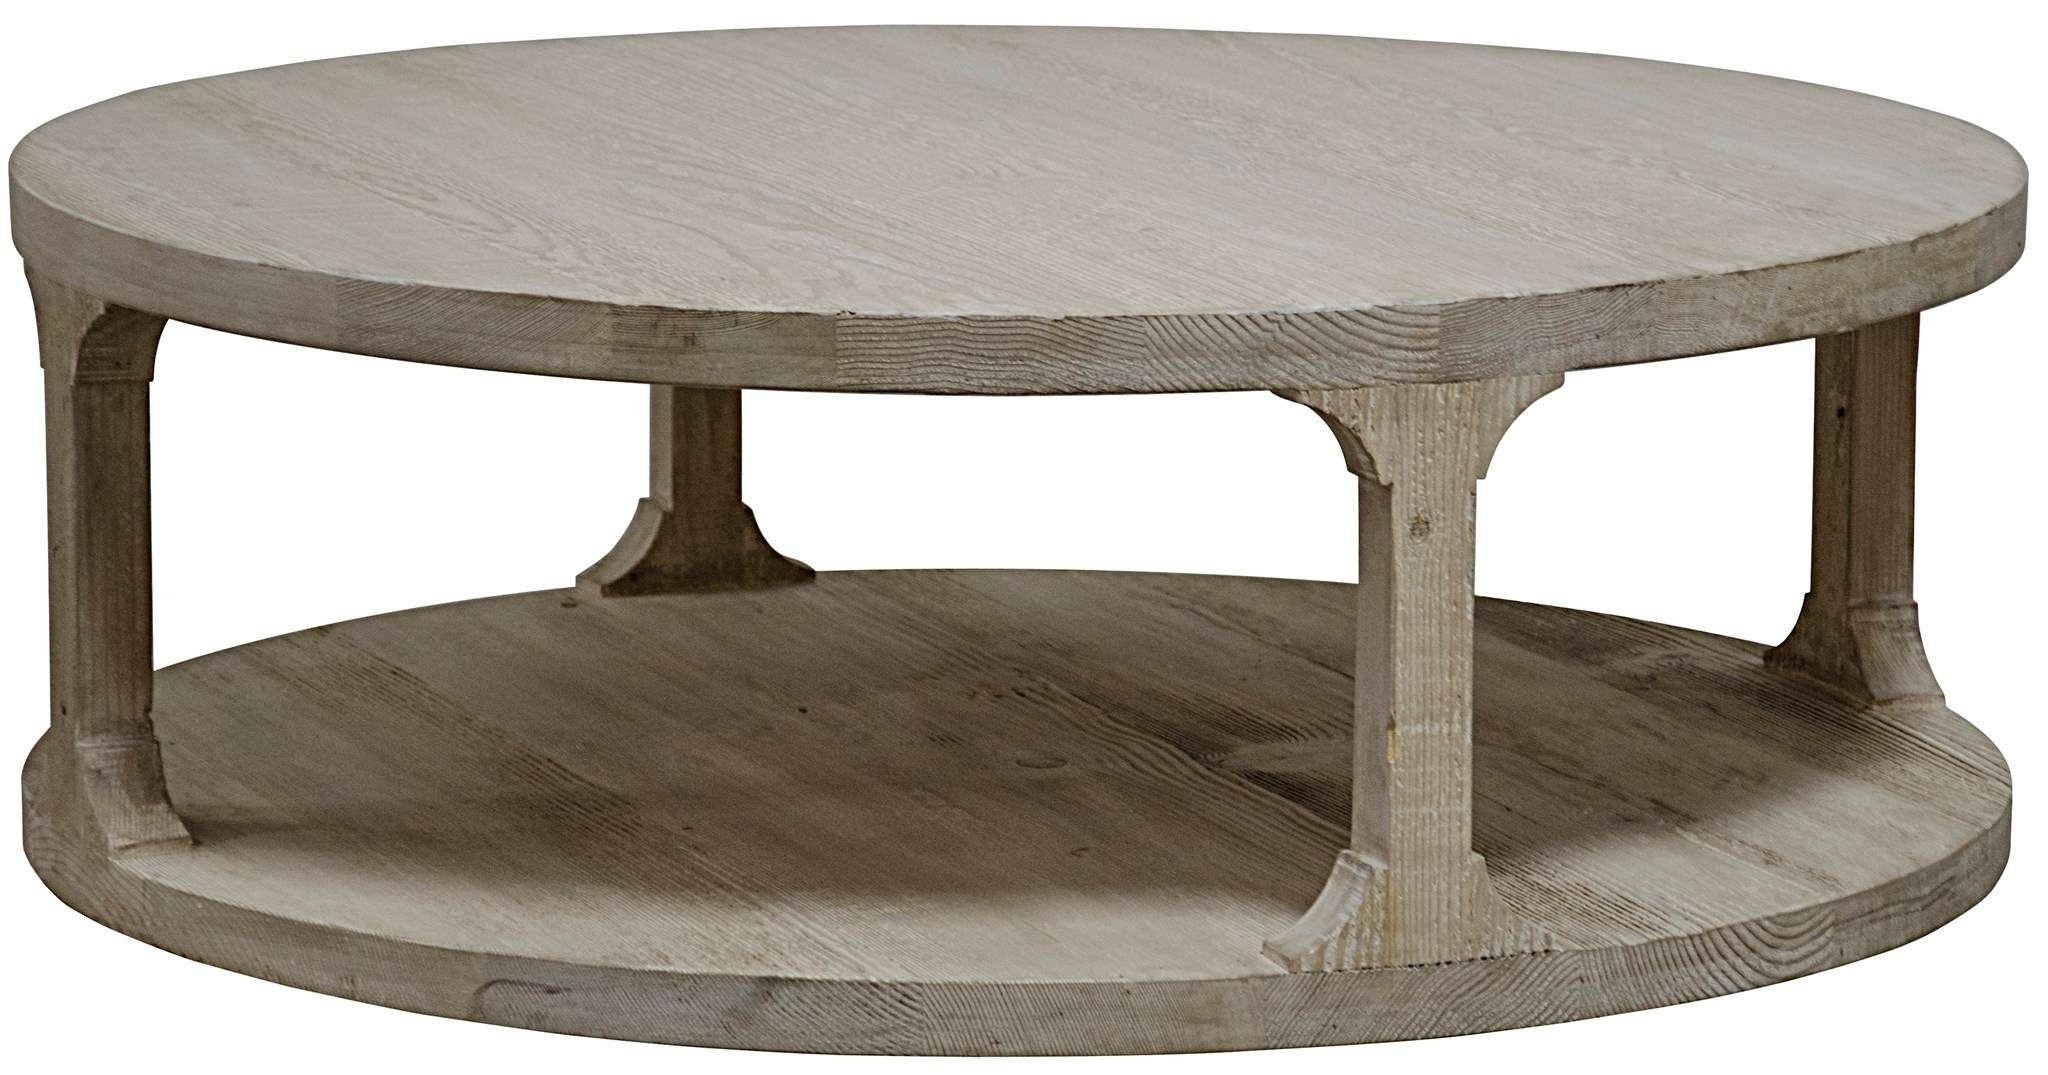 Famous Circular Coffee Tables Regarding Coffee Tables : Circular Coffee Table Round Wood Coffee Table (View 8 of 20)